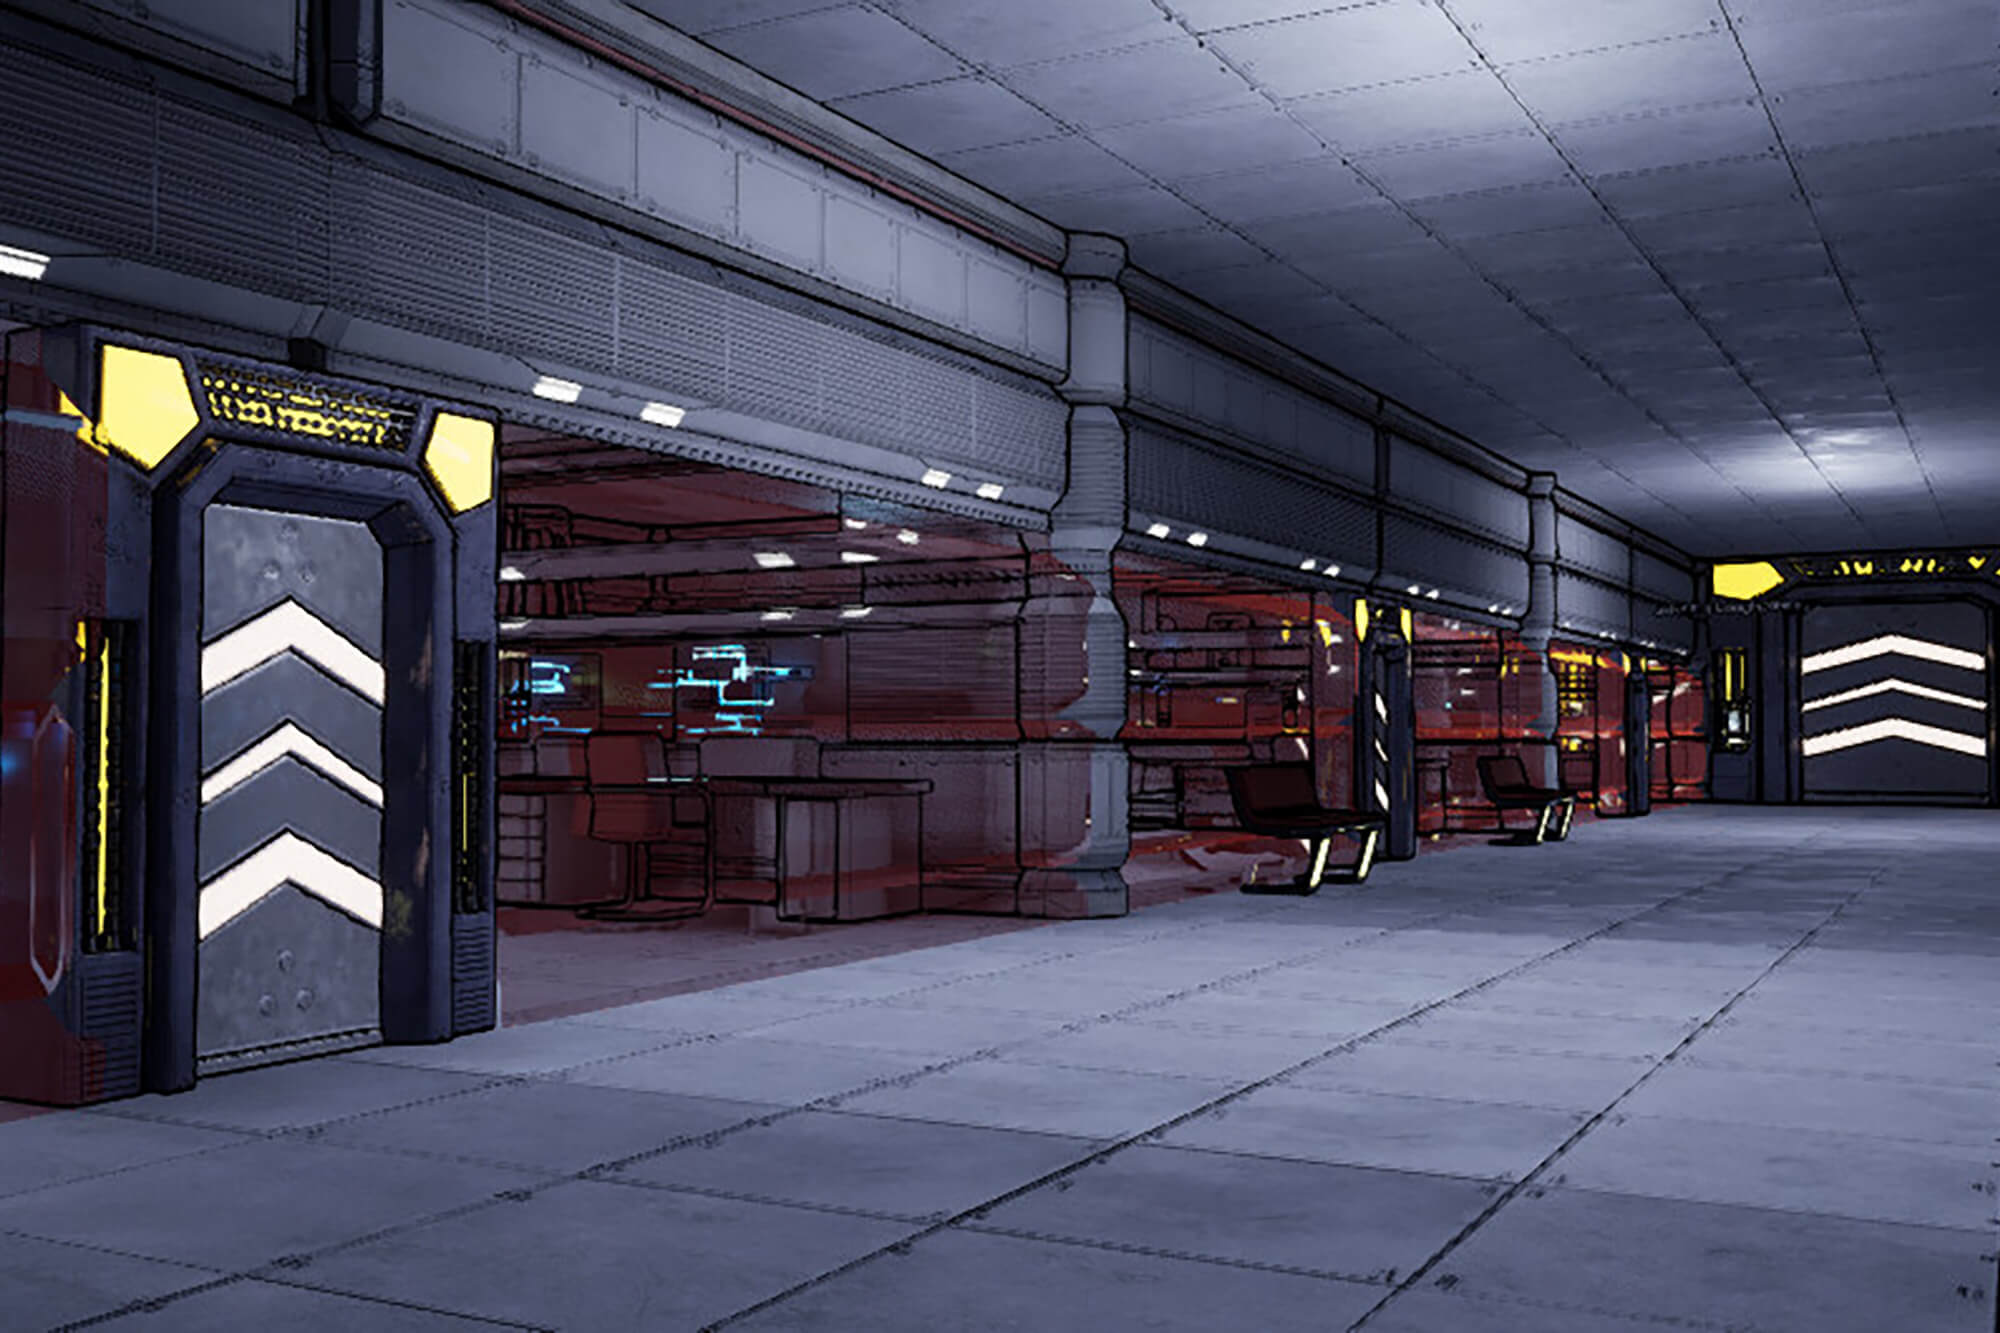 A futuristic industrial hallway with bays off it and heavy automatic doors